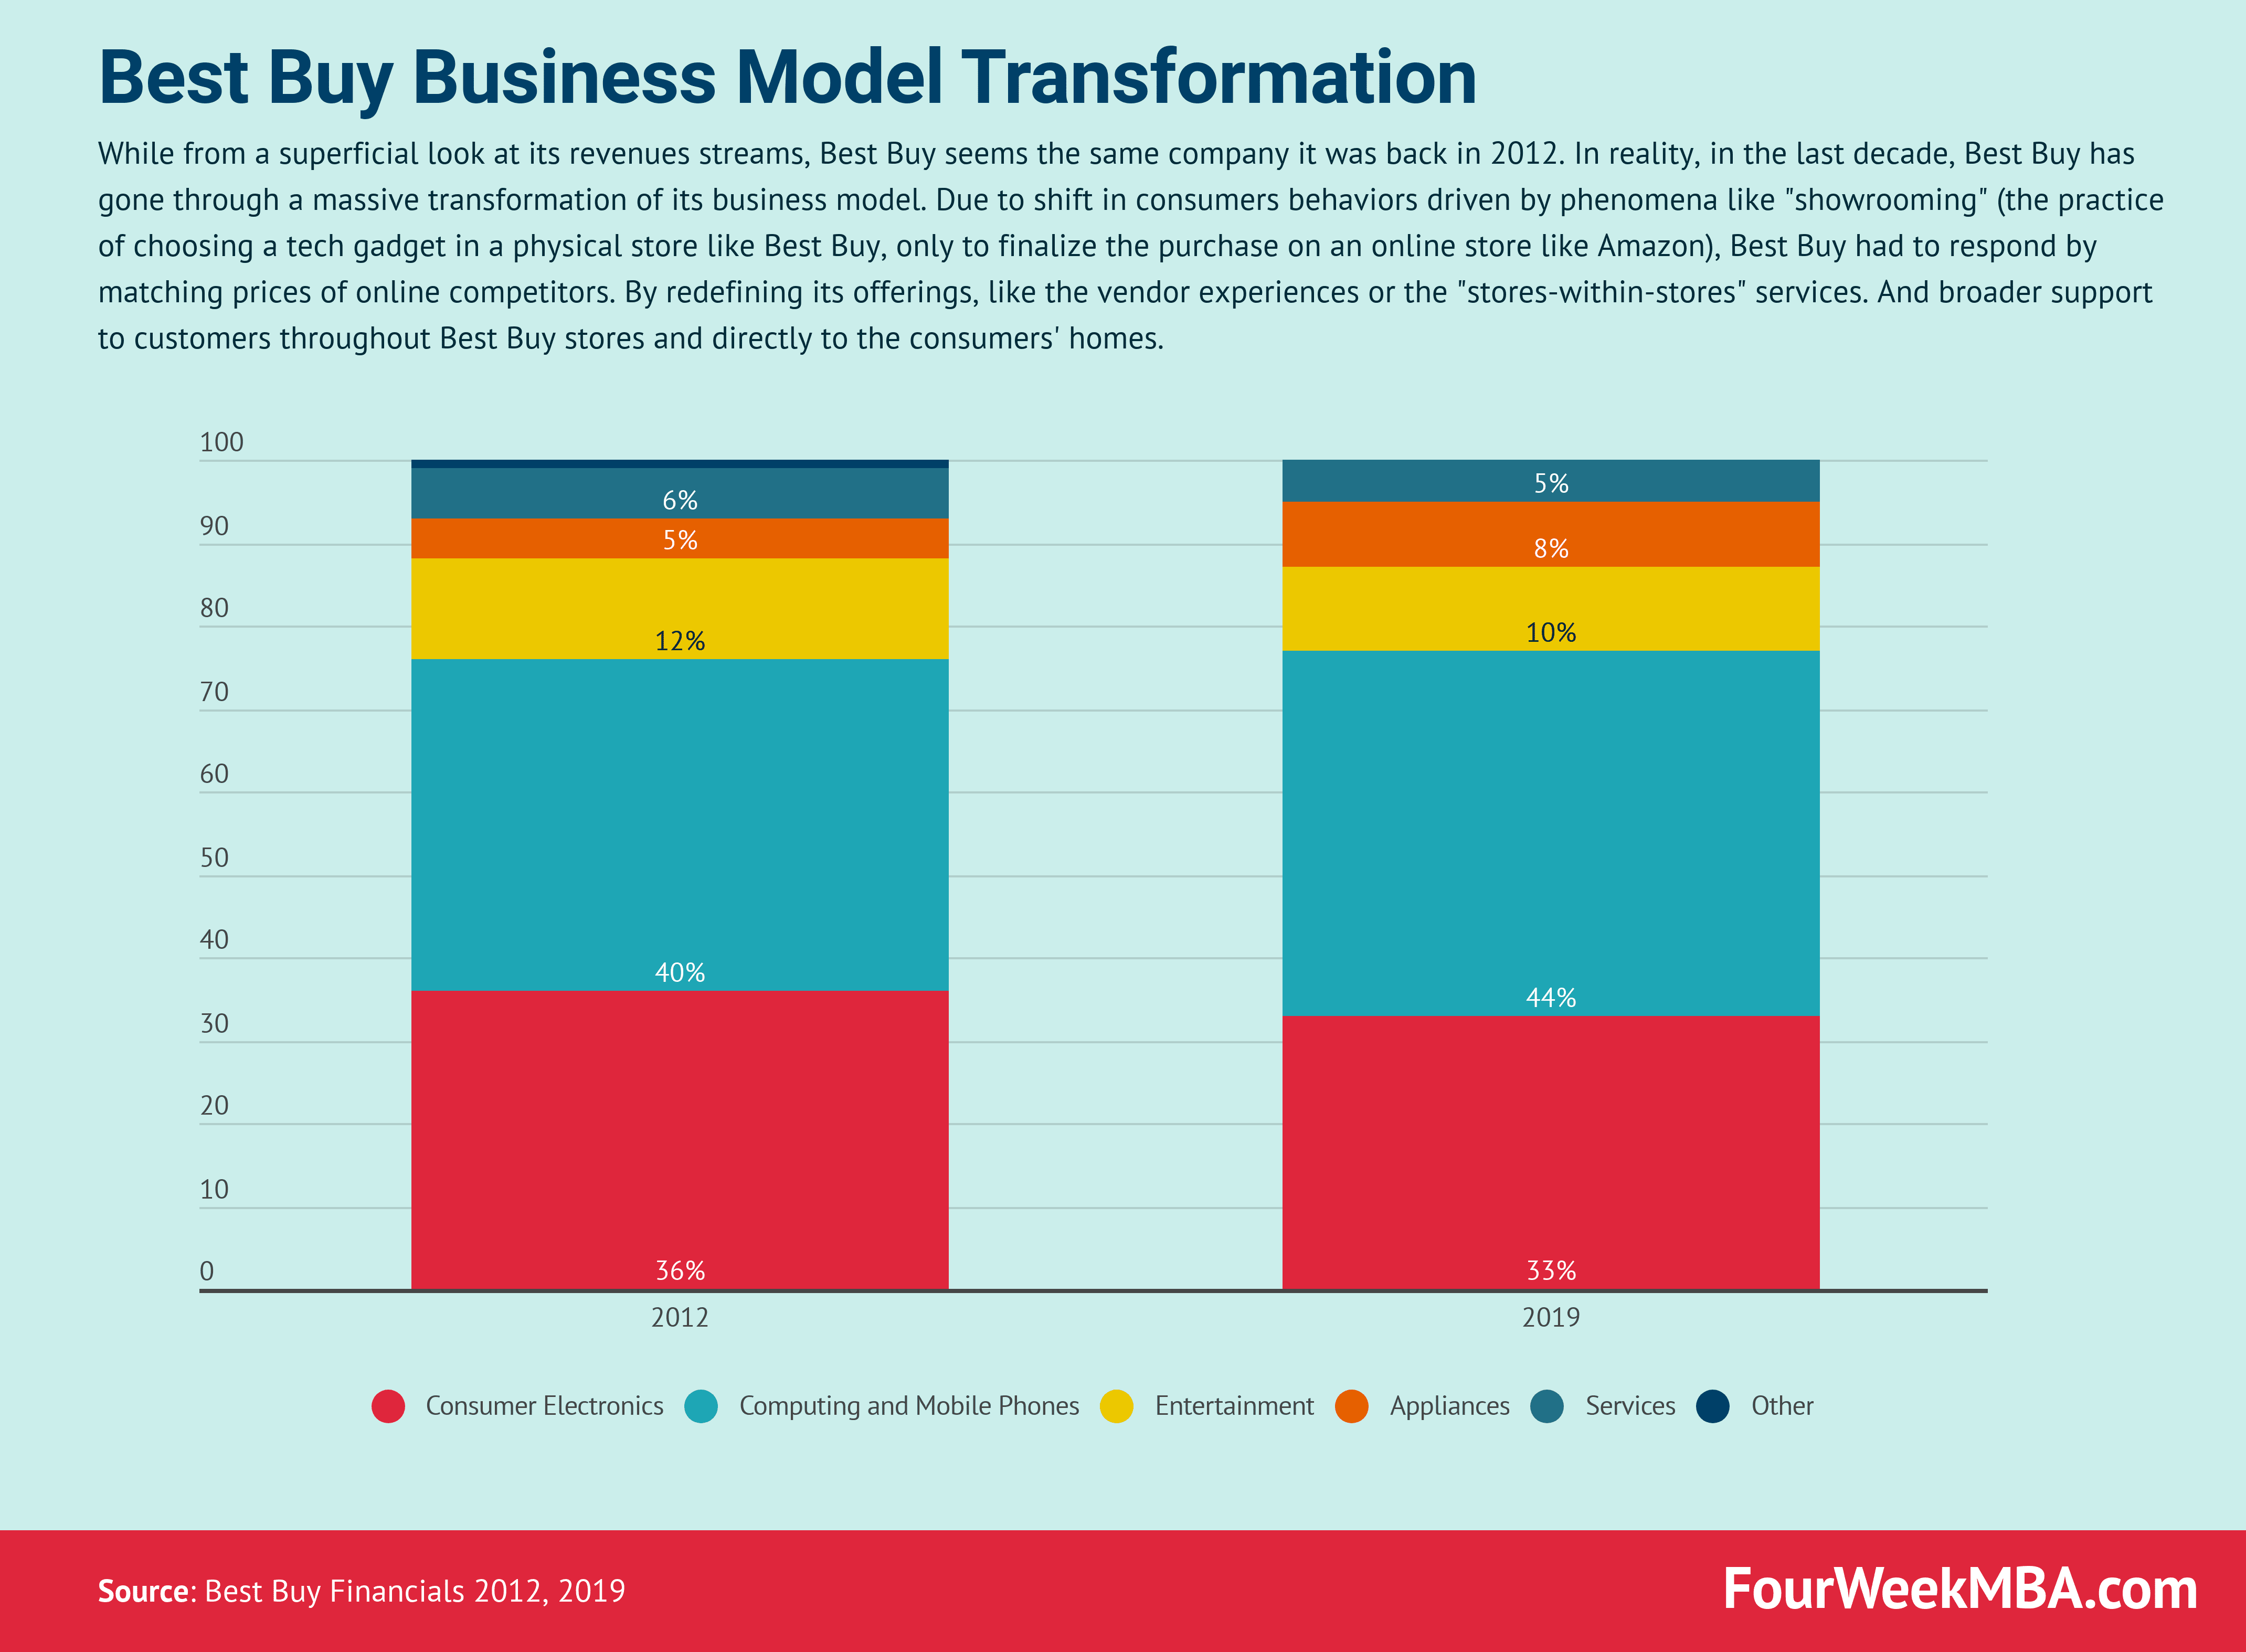 How Best Buy Business Model Transformation Saved It From Sure Failure